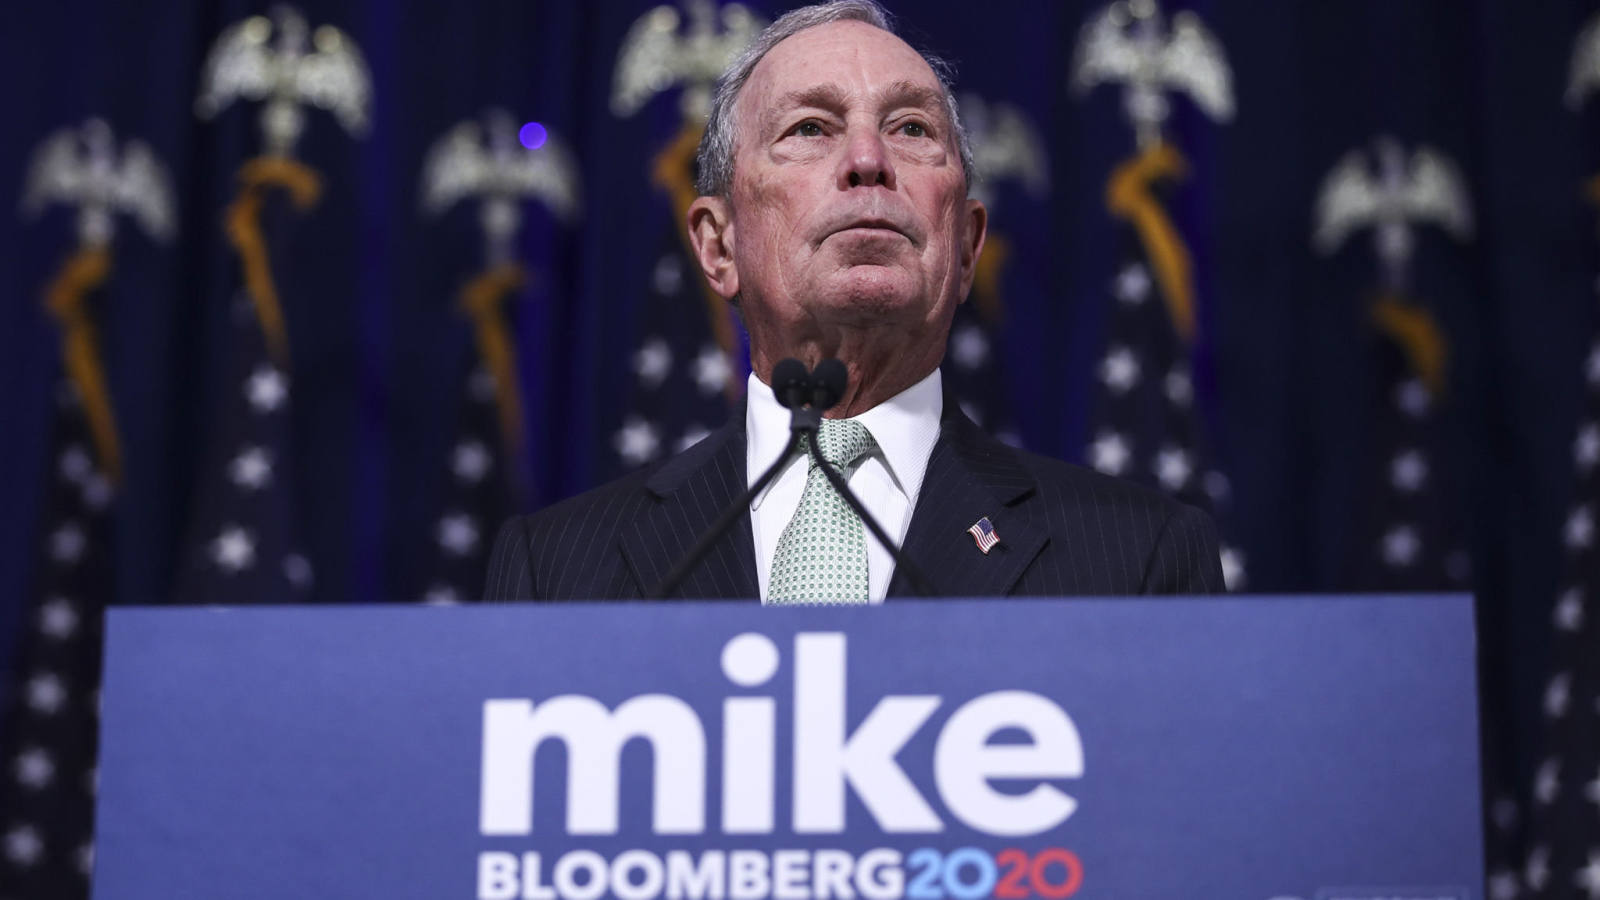 Blame Bloomberg, not Trump for Bloomberg News' dilemma